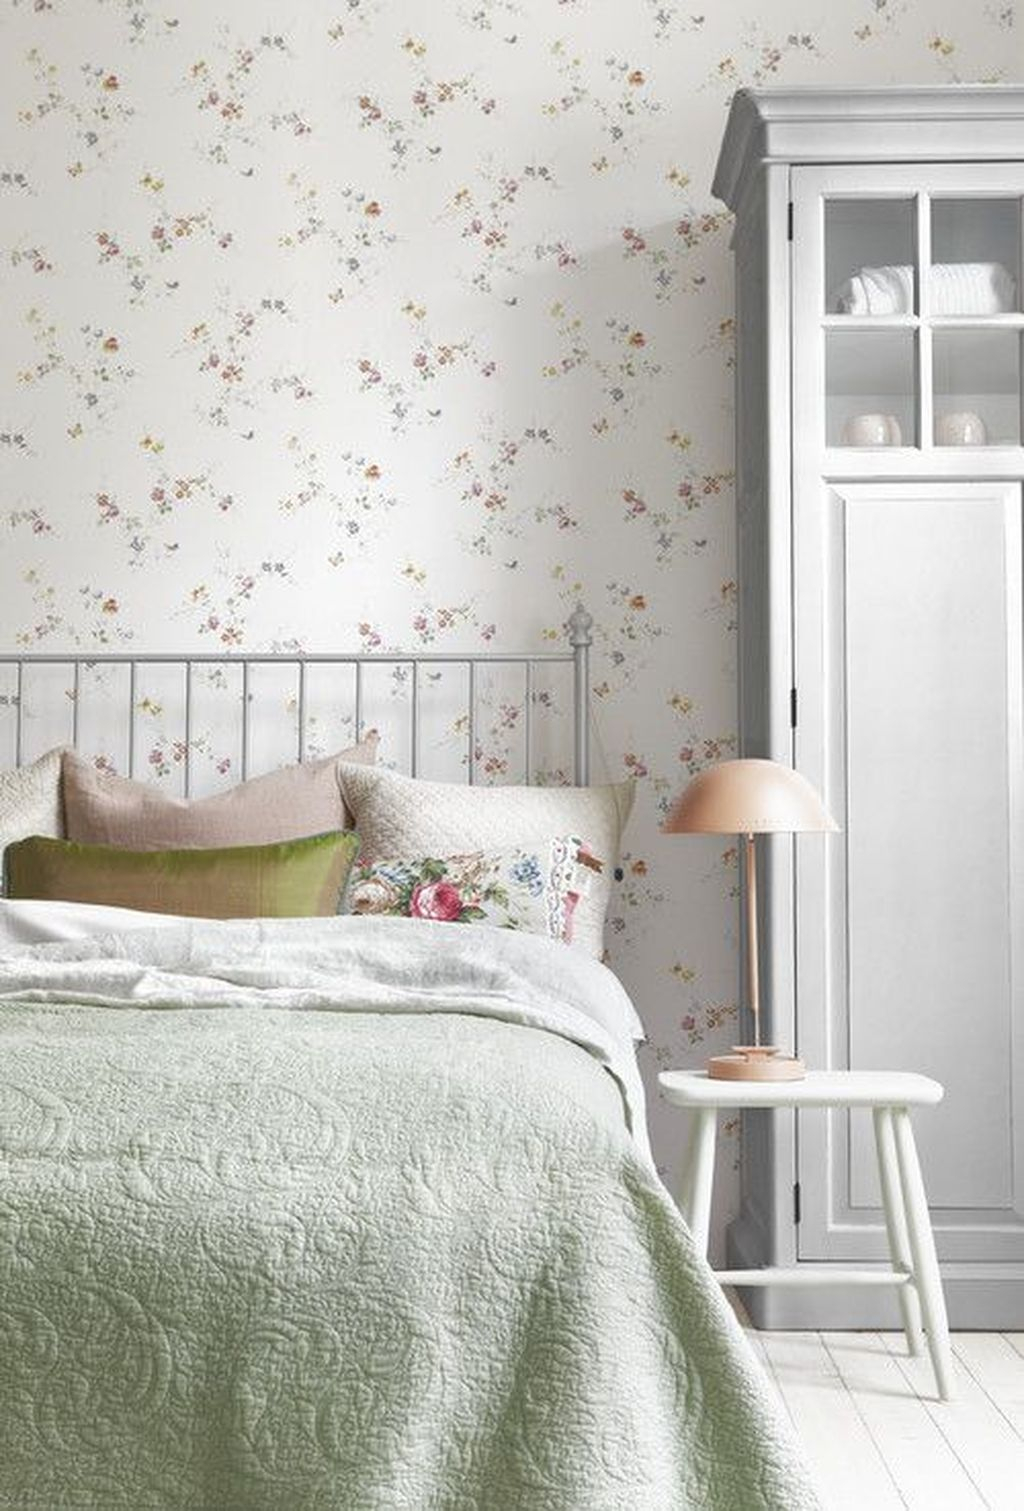 Best Bedroom Wallpaper Decor Ideas That Suitable For Your Family 44